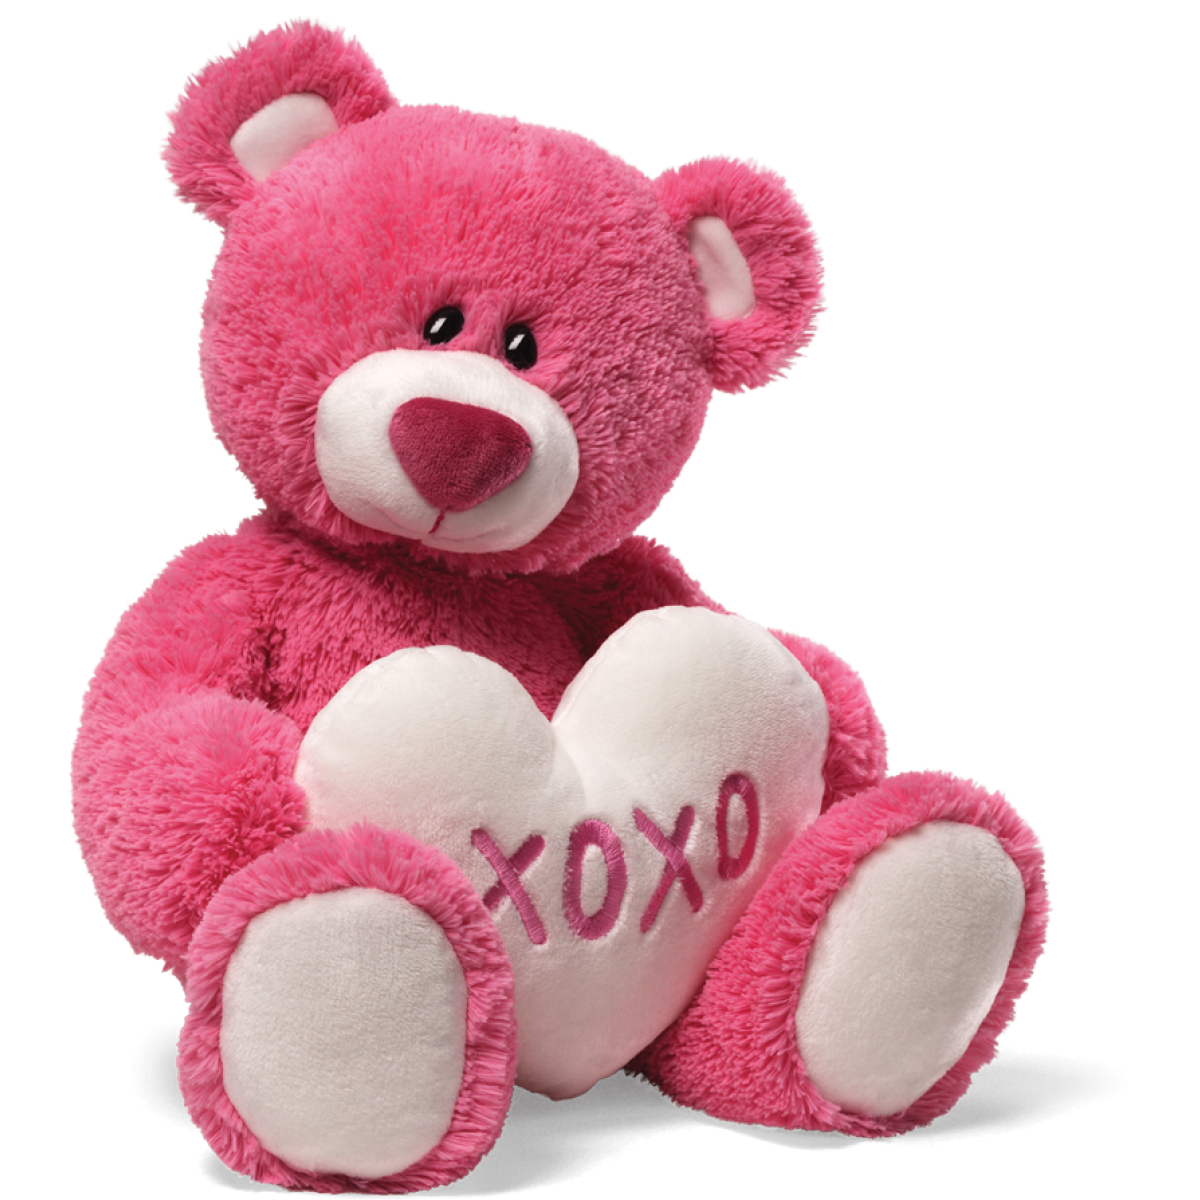 Download PNG image - Teddy Bear Png Hd - Teddy Bear PNG HD